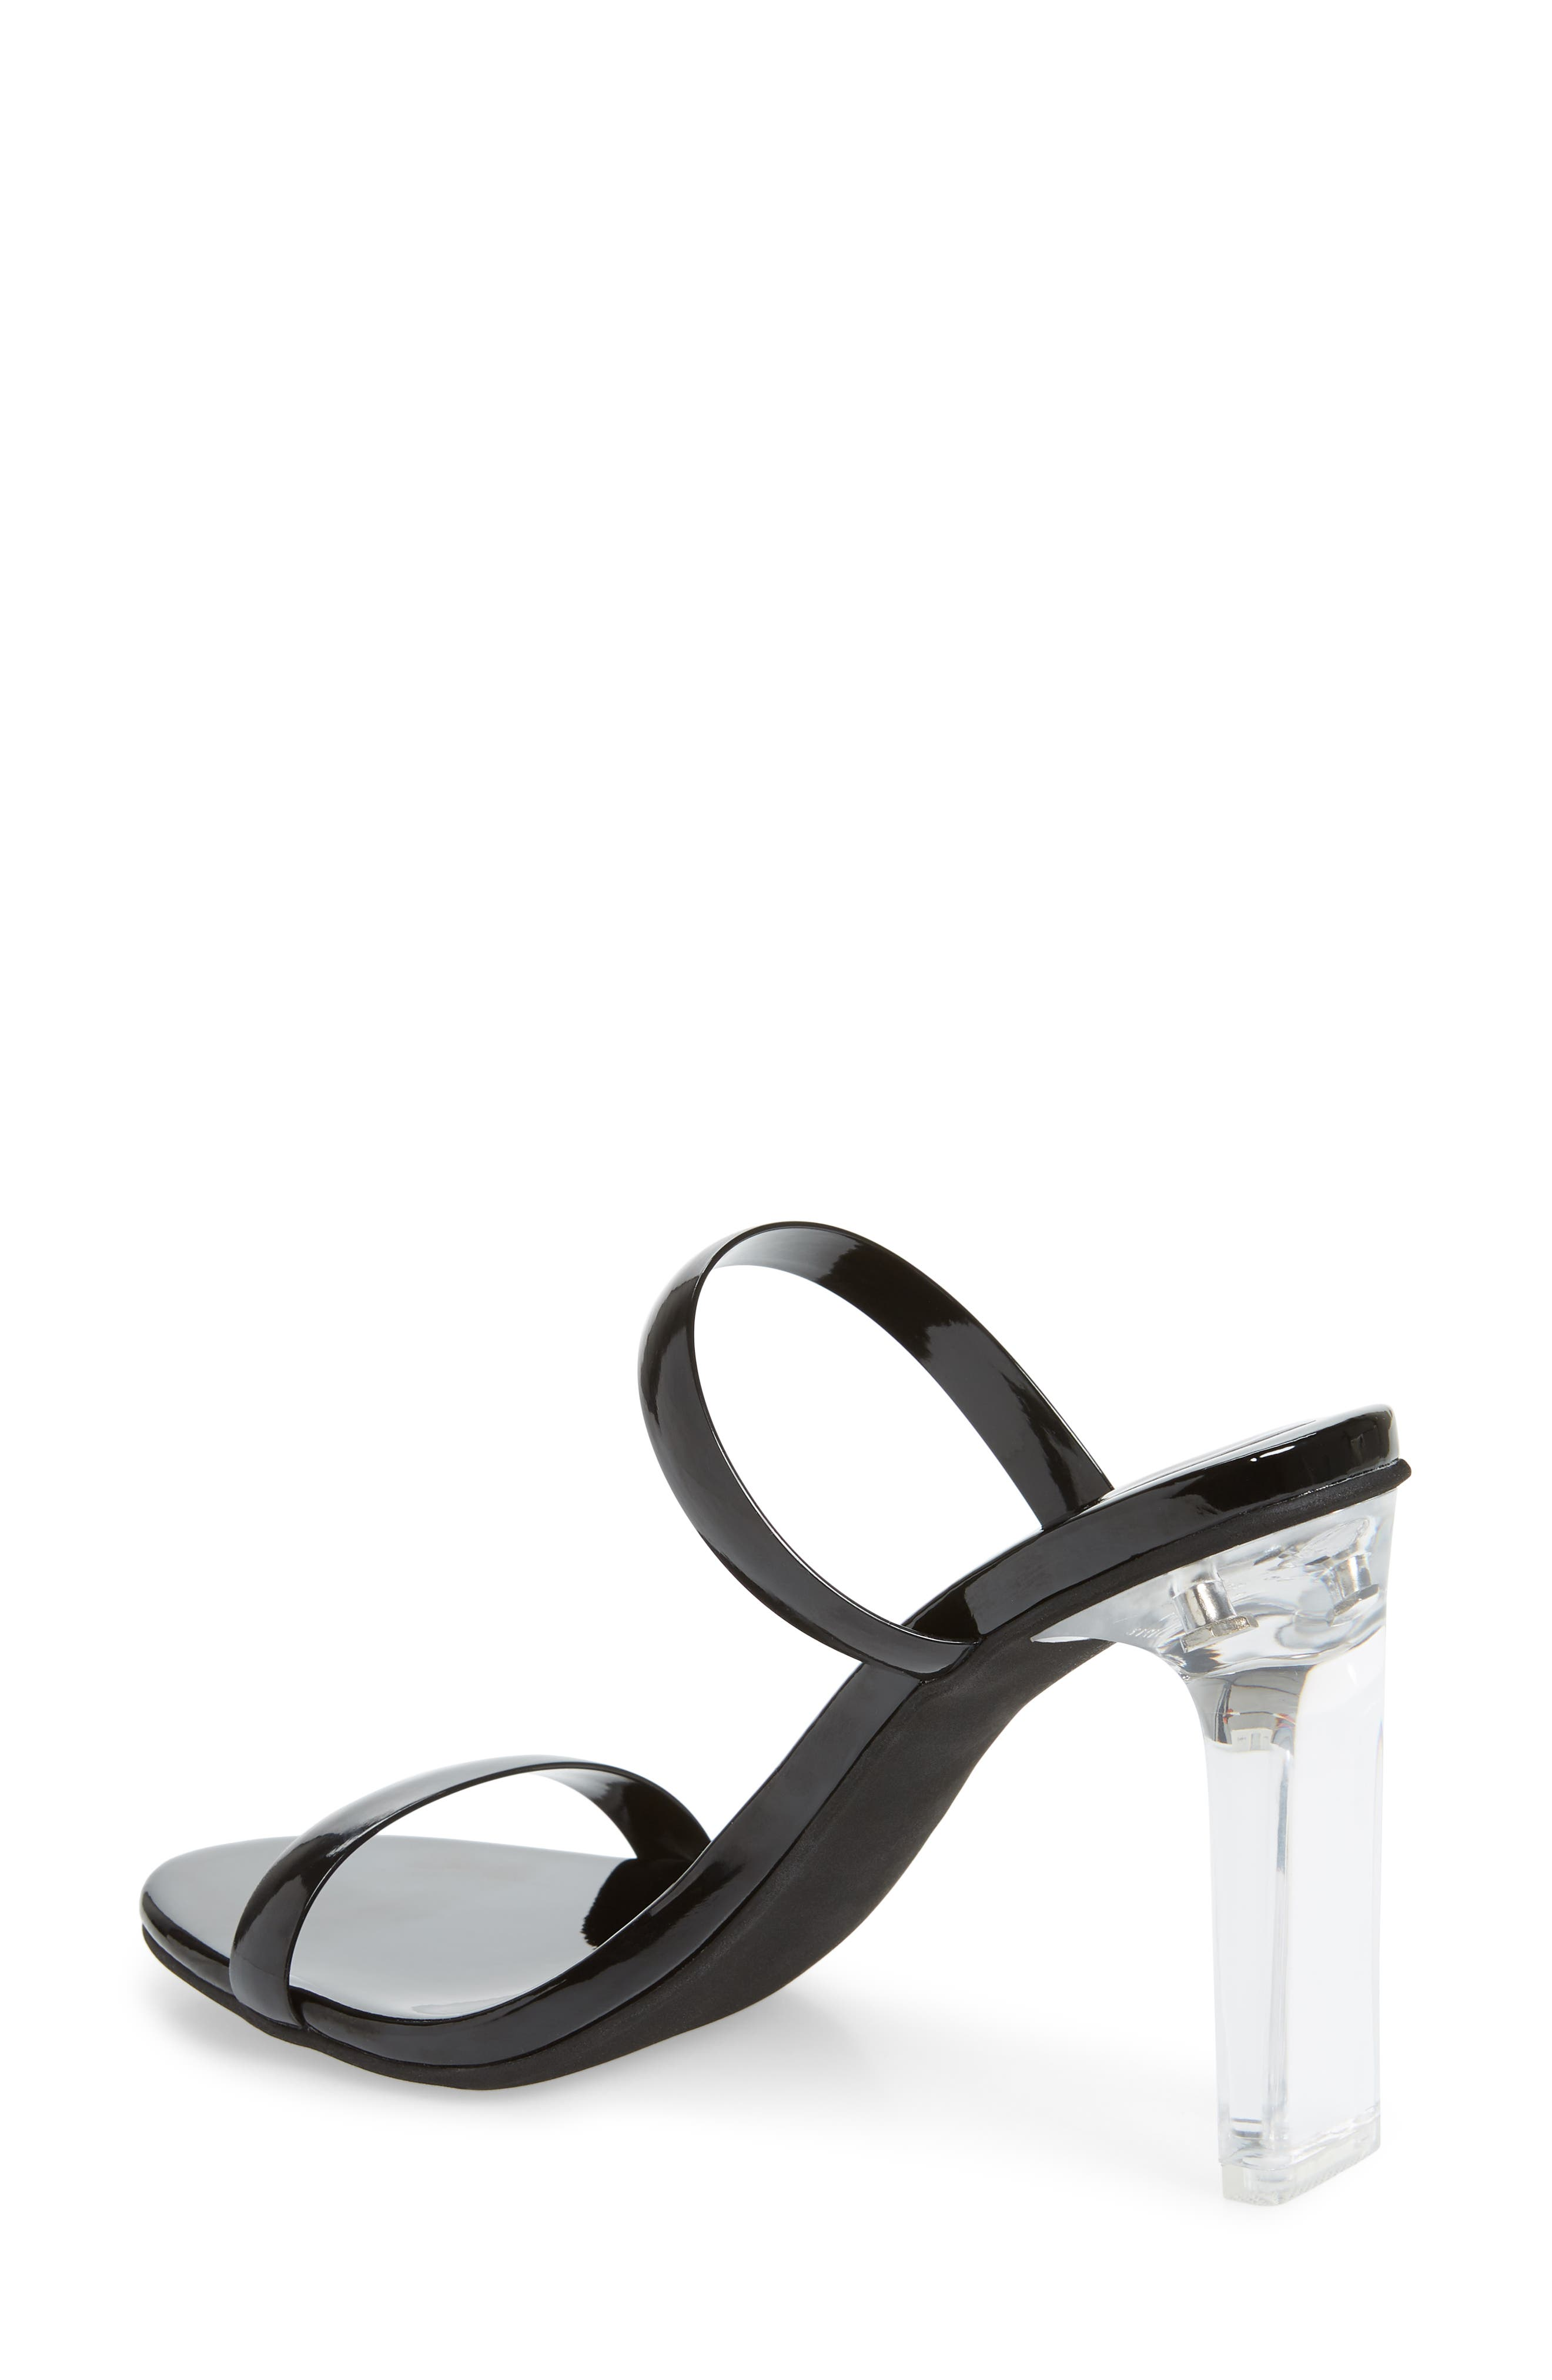 JEFFREY CAMPBELL, Serum Slide Sandal, Alternate thumbnail 2, color, 001